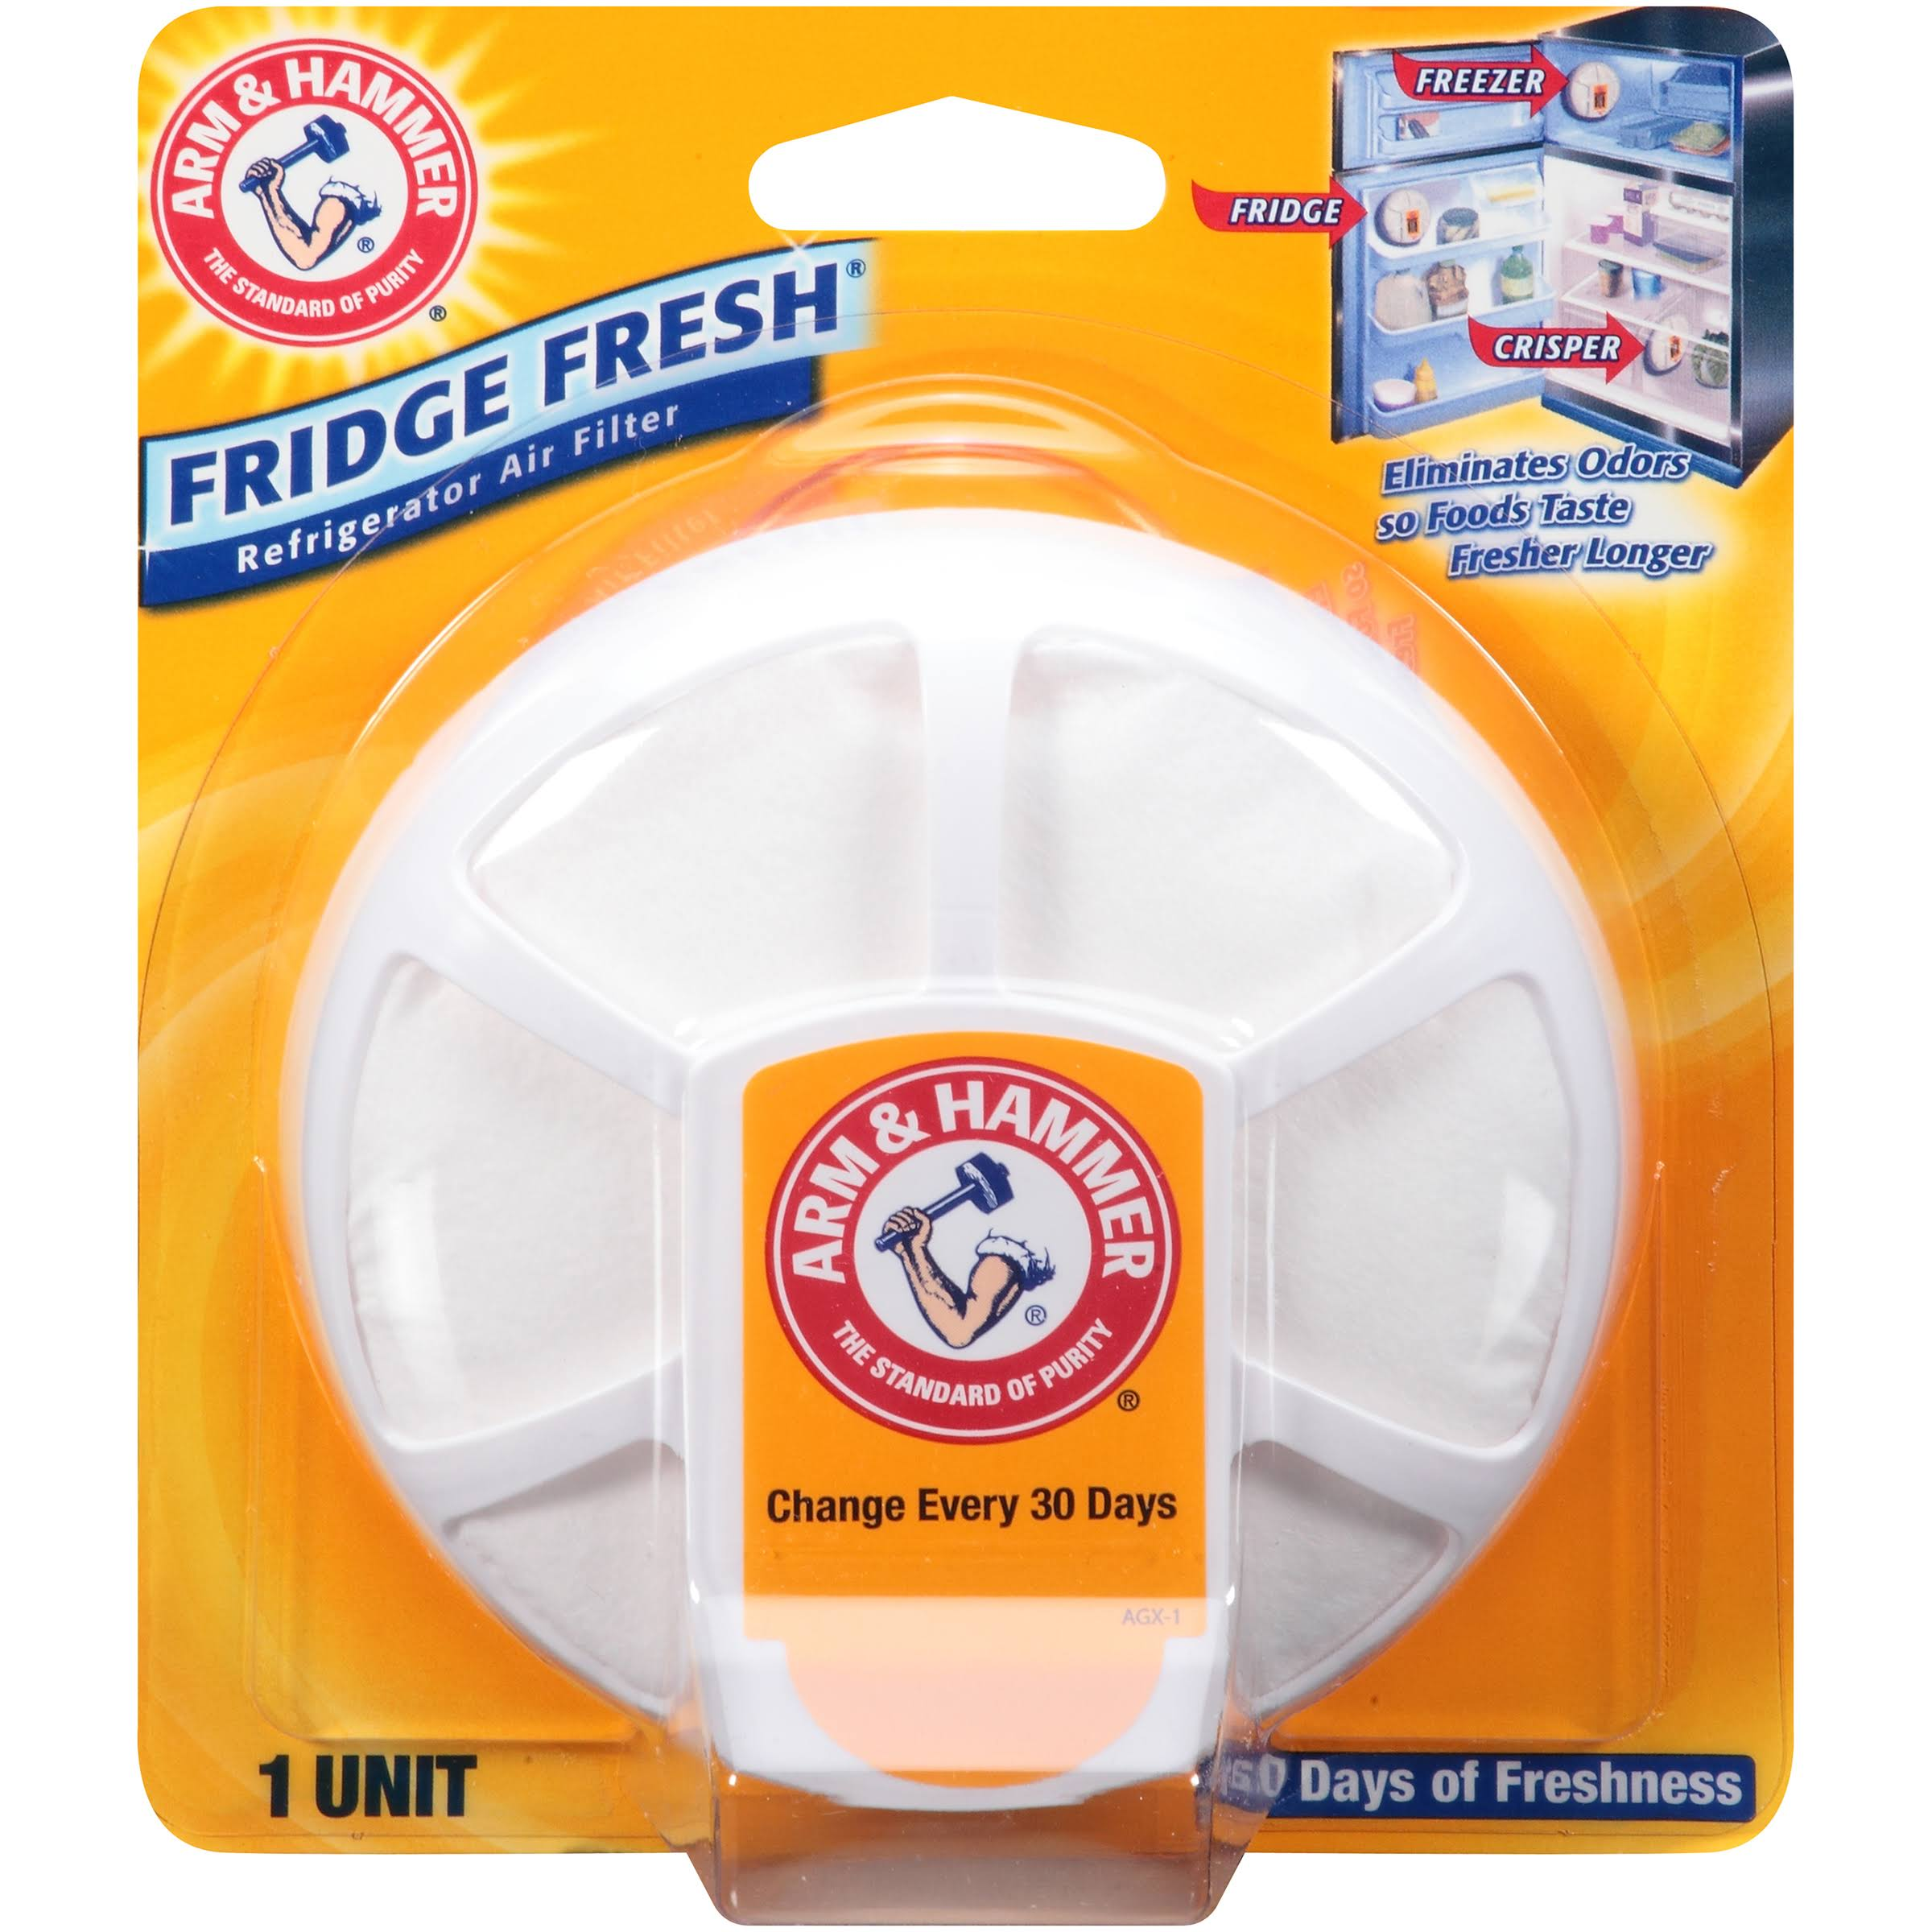 Arm and Hammer Fridge Fresh Refrigerator Air Filter